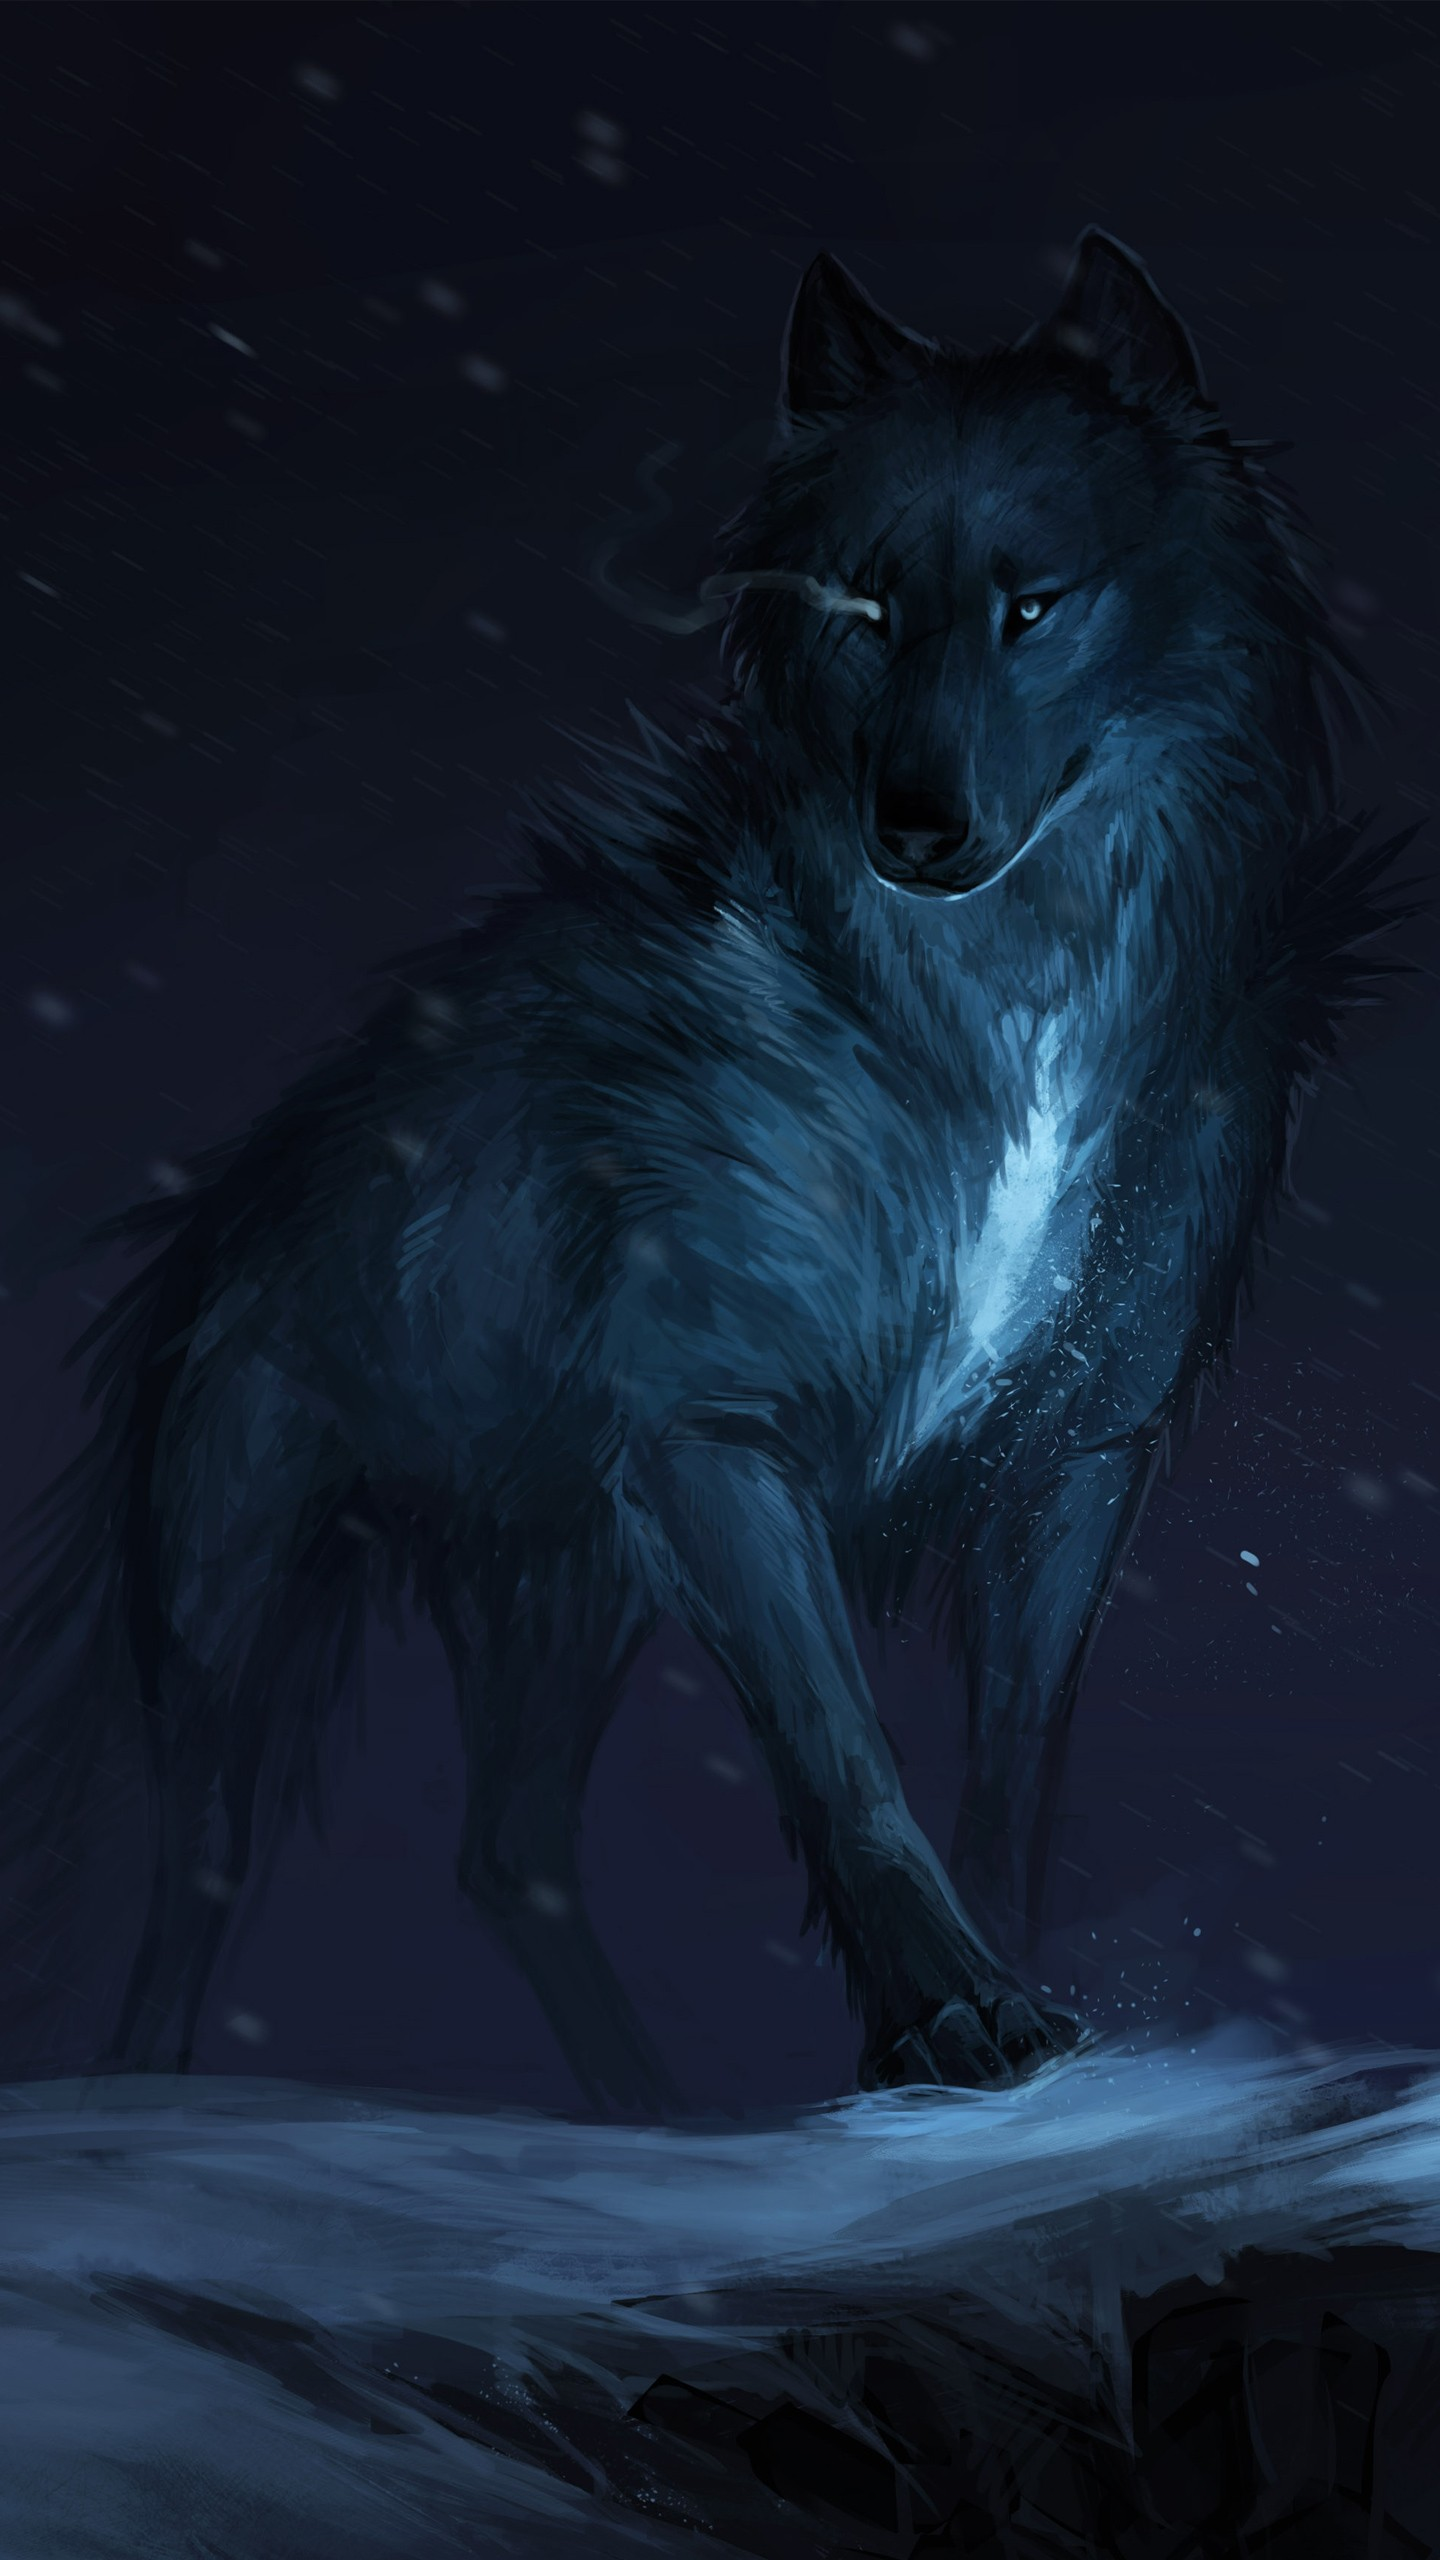 Wolf Wallpaper Iphone Cgi Wolf Wallpapers Hd Wallpapers Id 22991